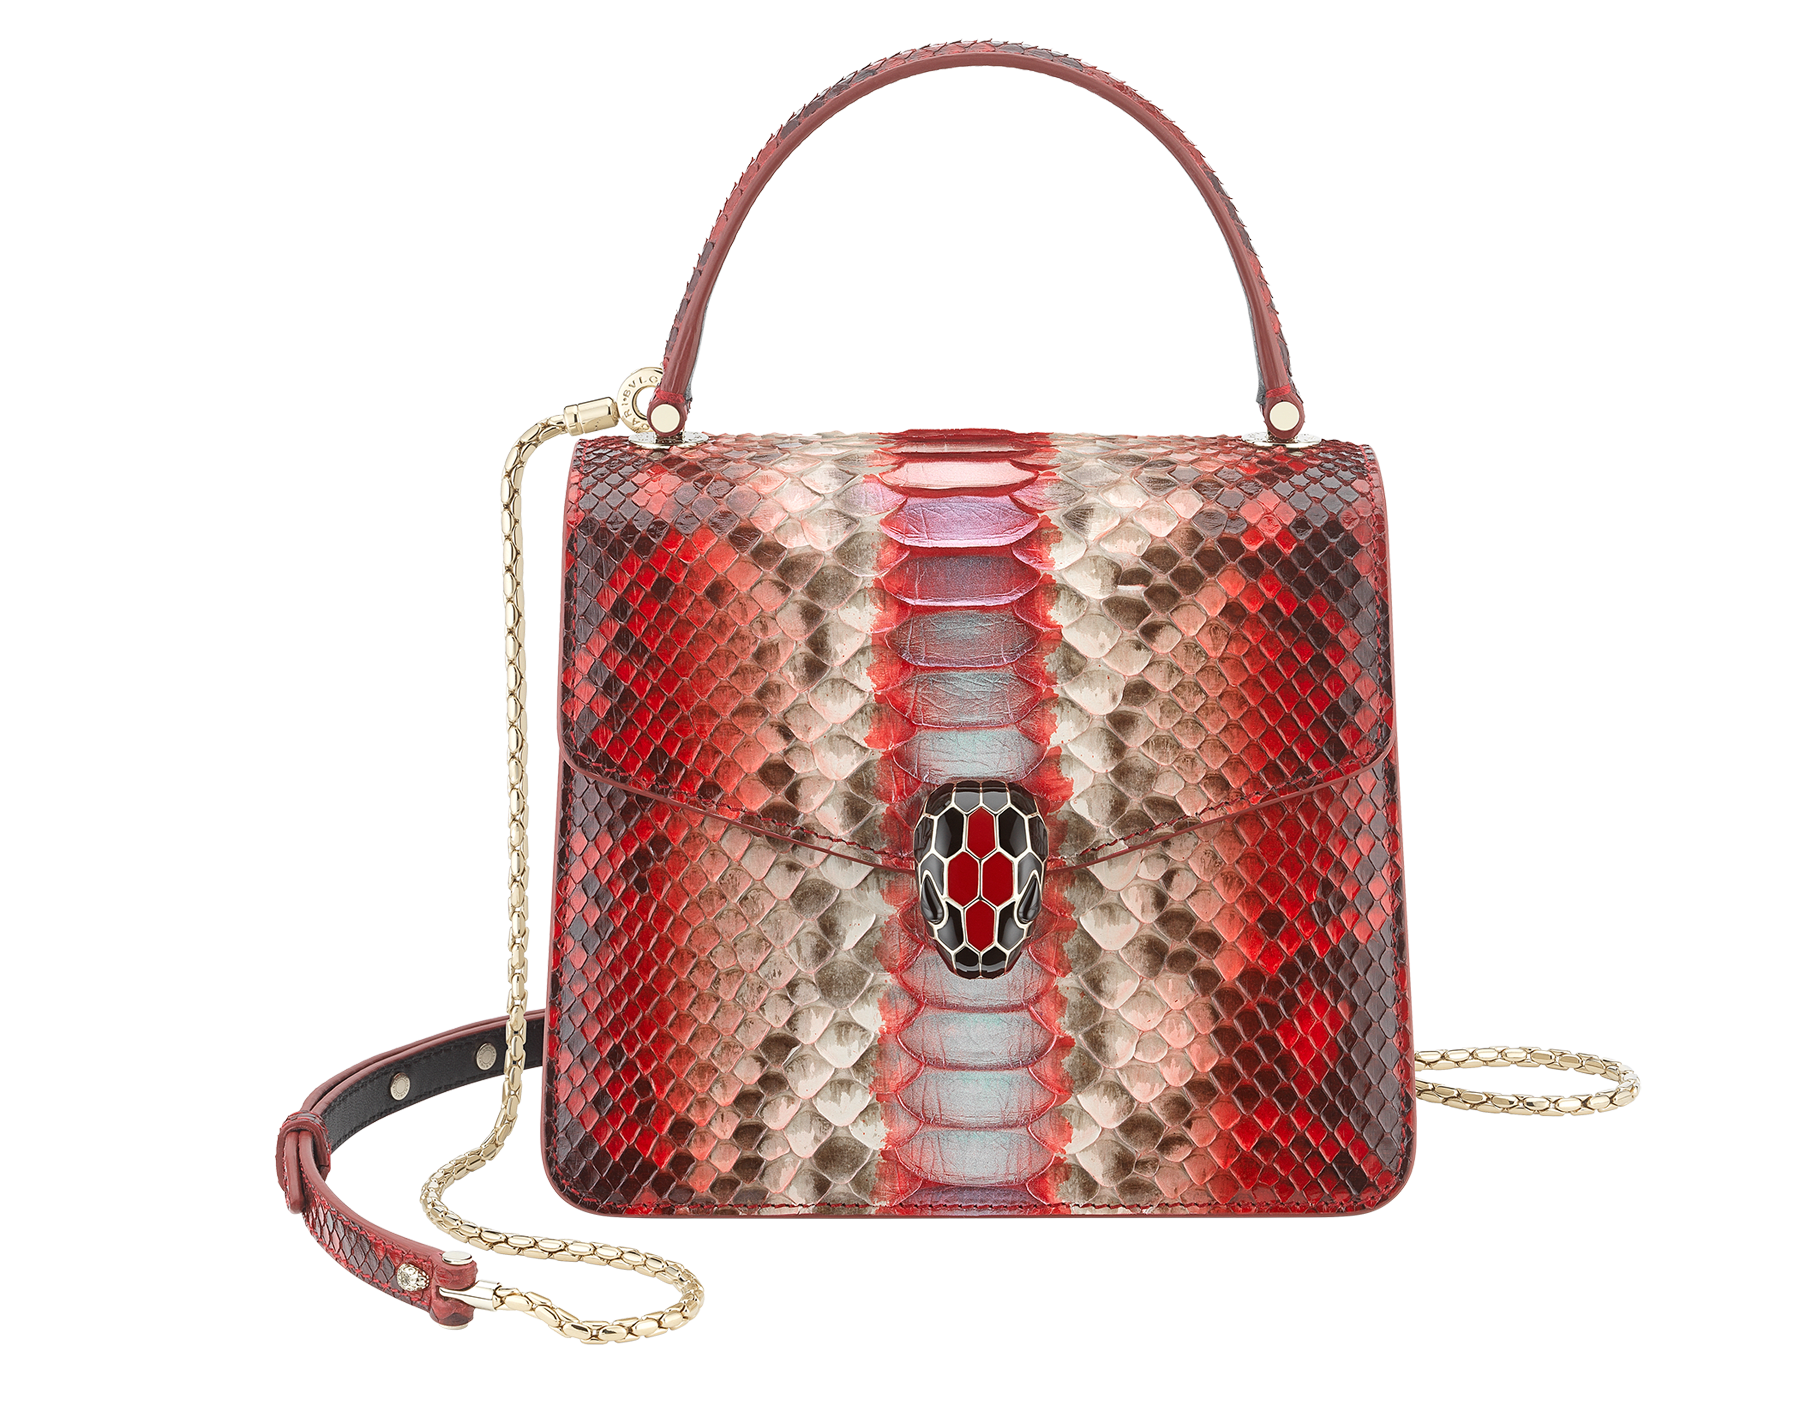 """Serpenti Forever "" crossbody bag in carmine jasper Eclectic"" python skin. Iconic snakehead closure in light gold plated brass enriched with black and carmine jasper enamel and black onyx eyes. 288874 image 1"